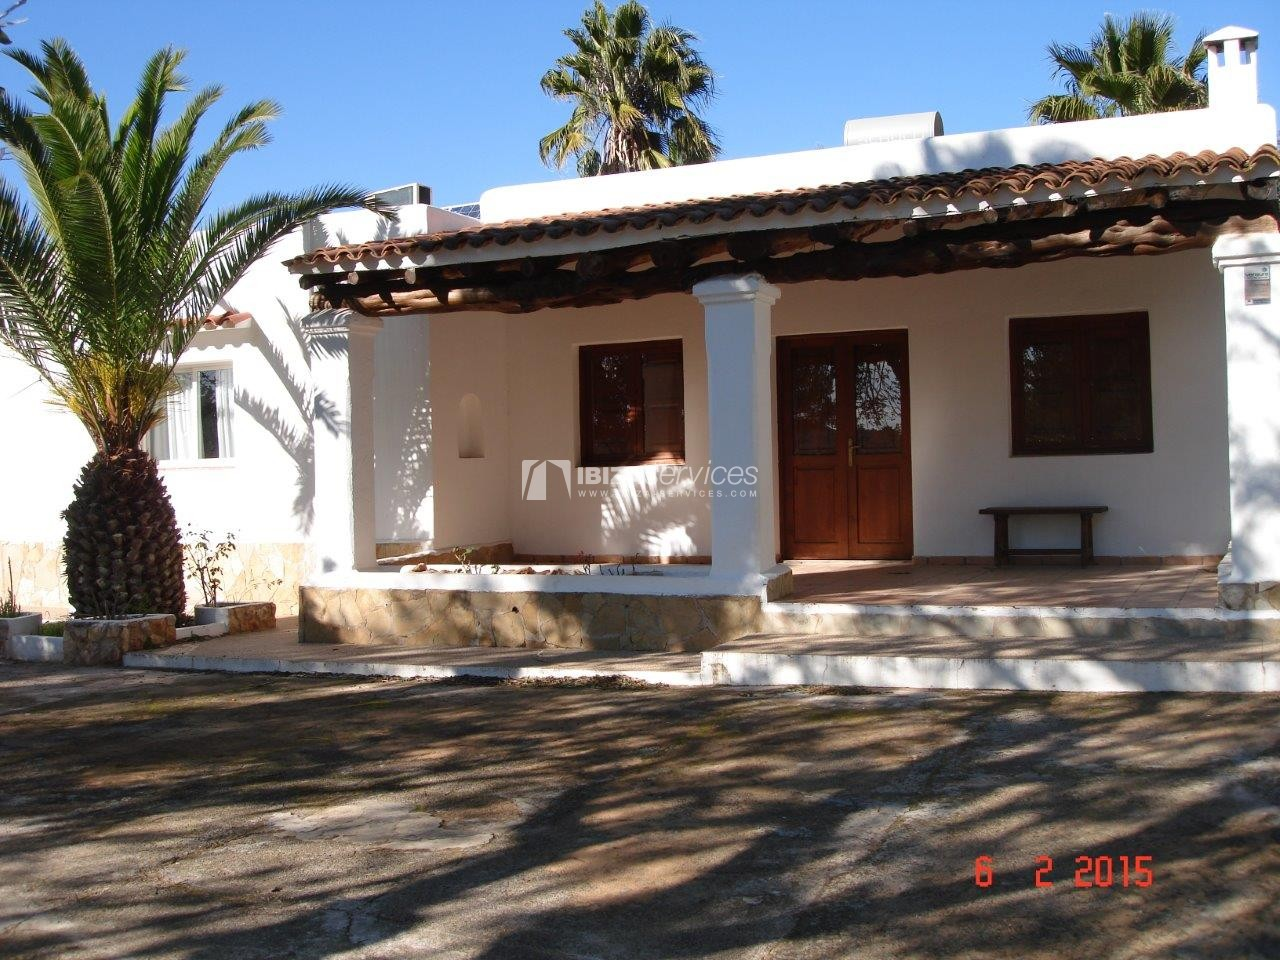 House for sale with tennis court in Sant Rafael perspectiva 1